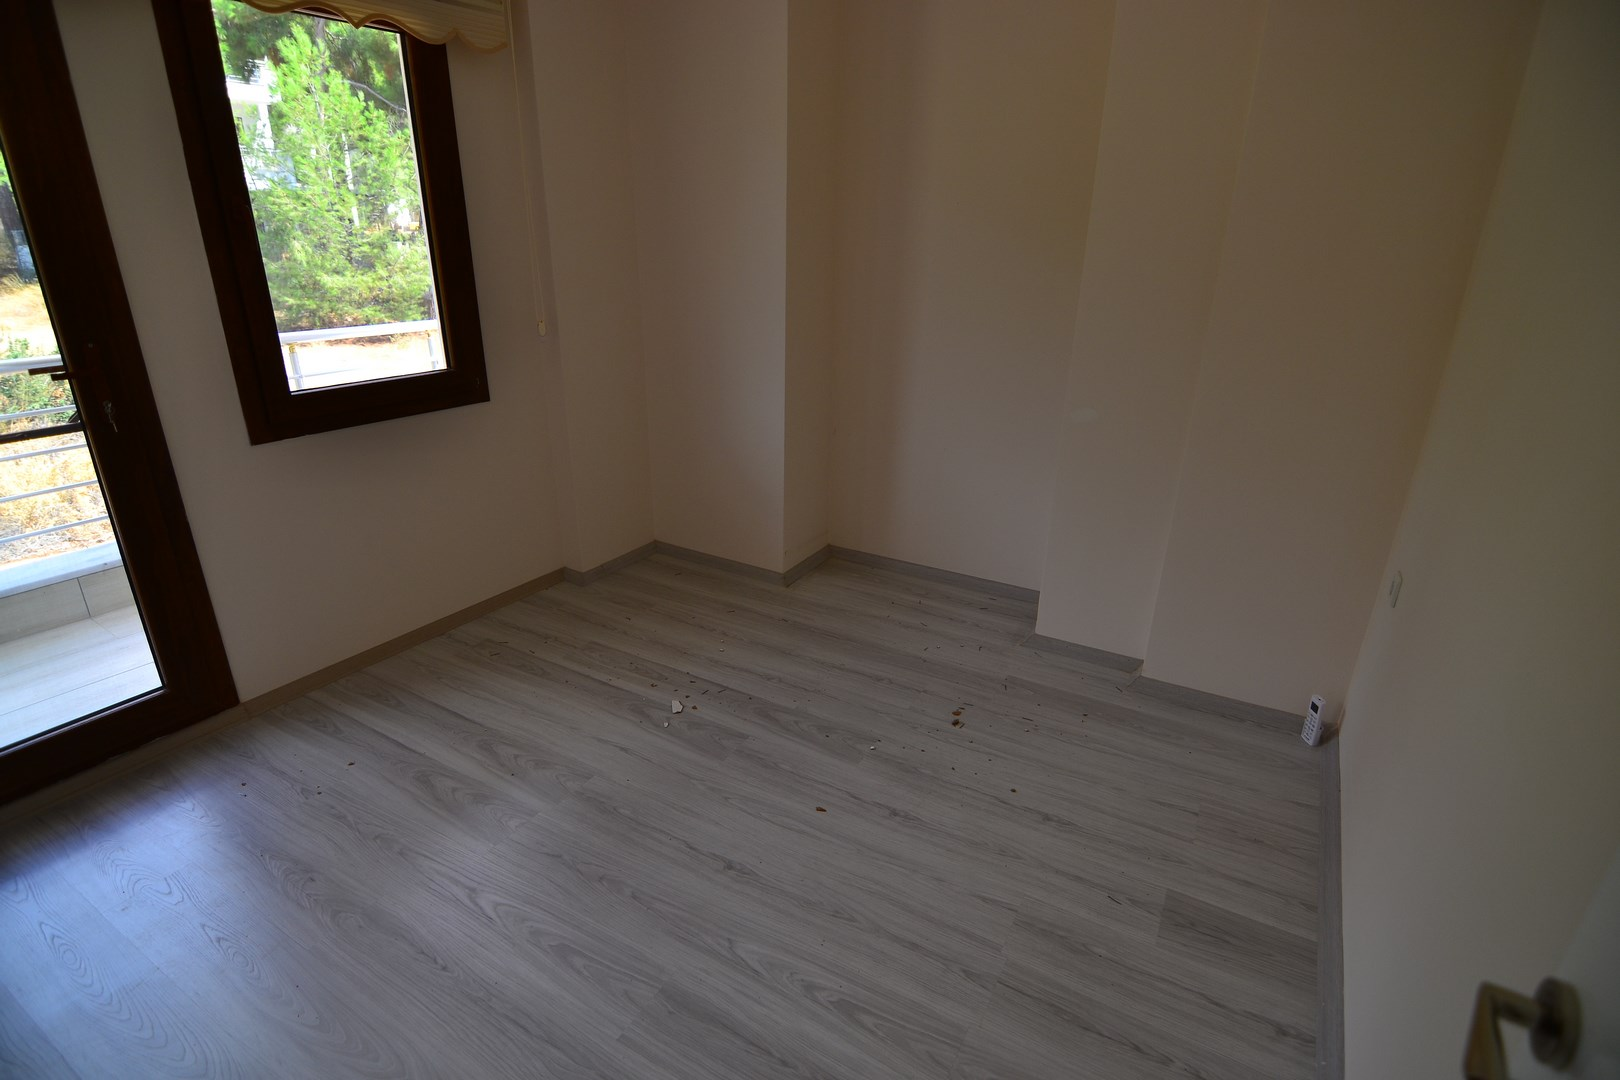 (SOLD) 3 Bedroom Semi-detached house for sale in Akbük